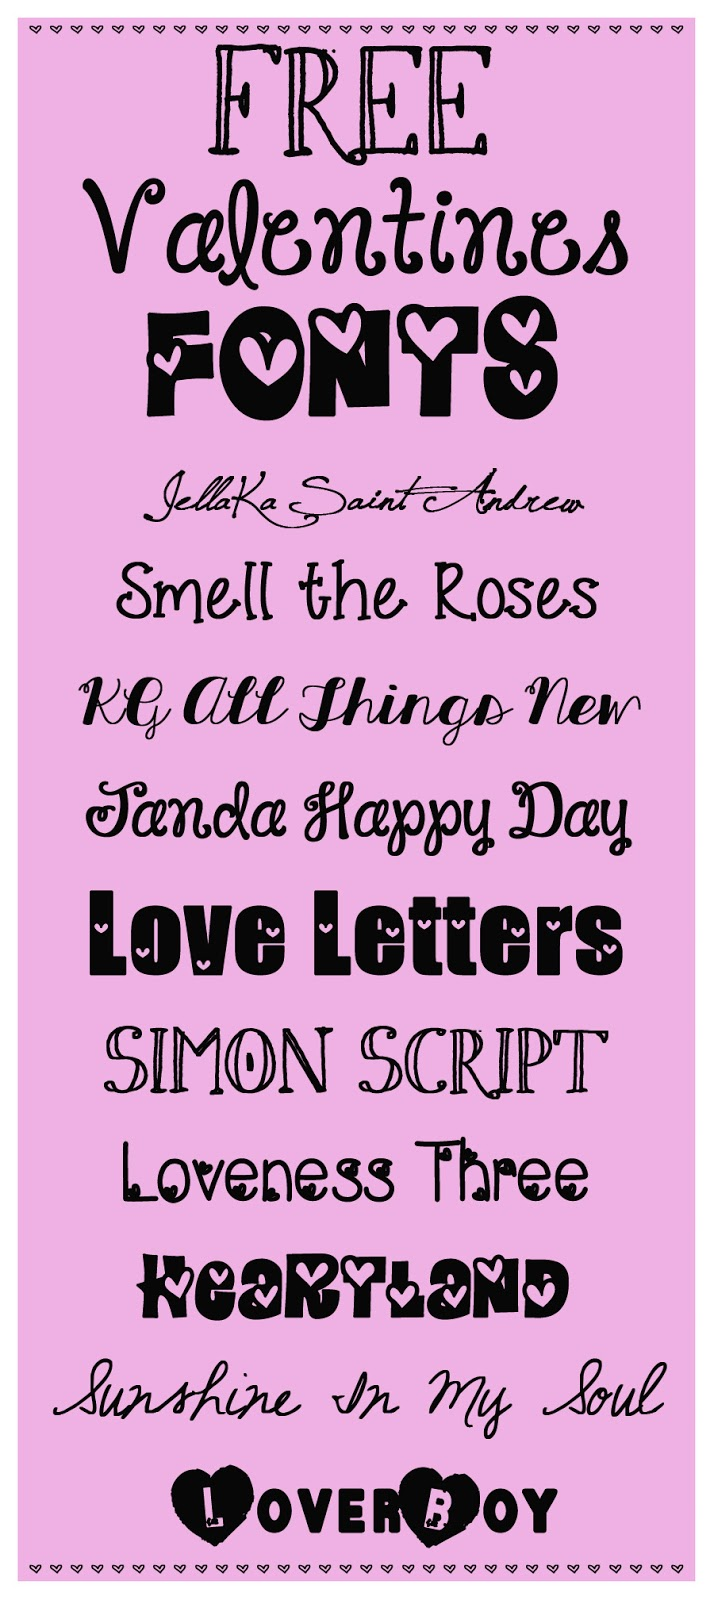 Our Reflection My Favorite Free Fonts For Valentine's Day. Waterfowl Decals. Customized Stickers. Baby Boy Murals. Lebra Signs Of Stroke. Intimacy Signs. Library Banners. Furniture Signs. Panther Murals